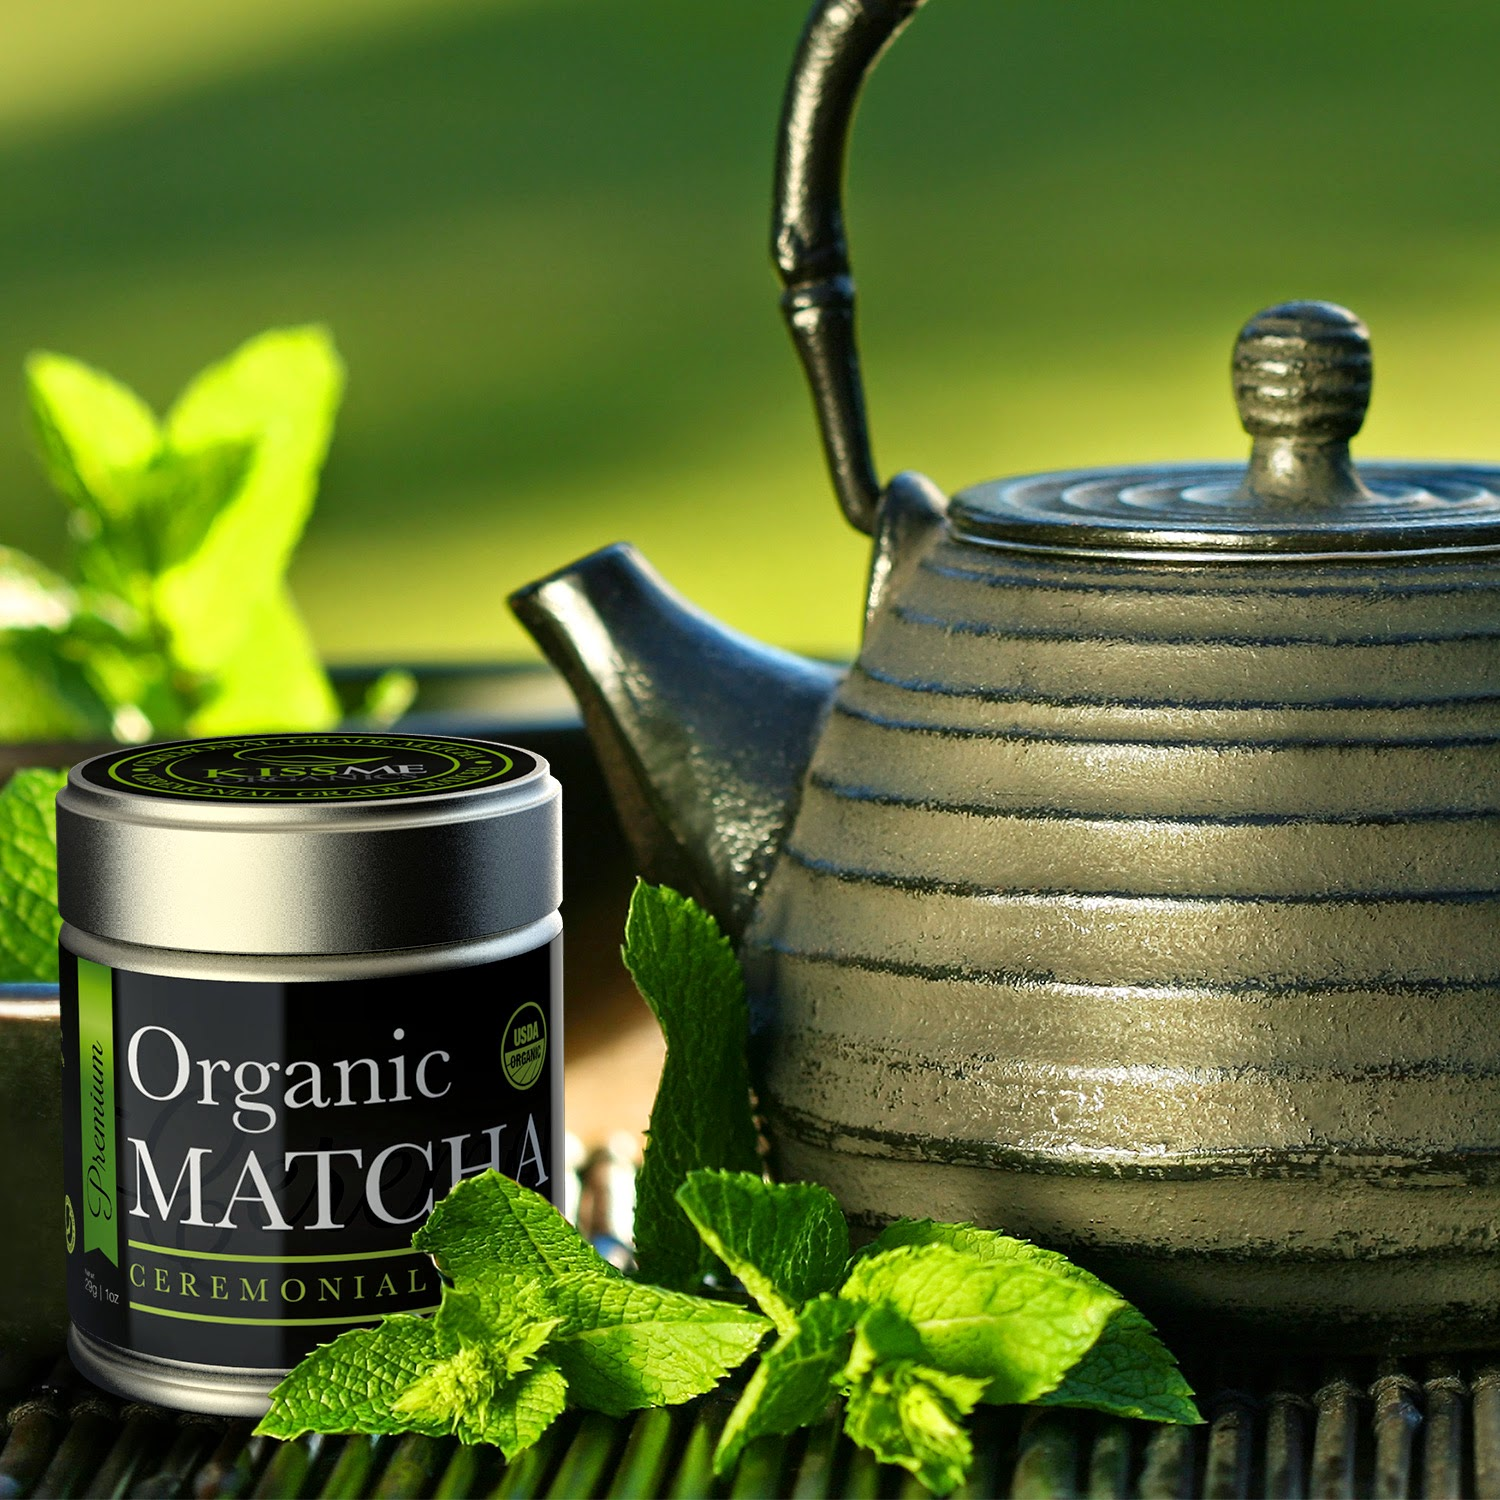 Organic Ceremonial Grade Green Tea Matcha Review